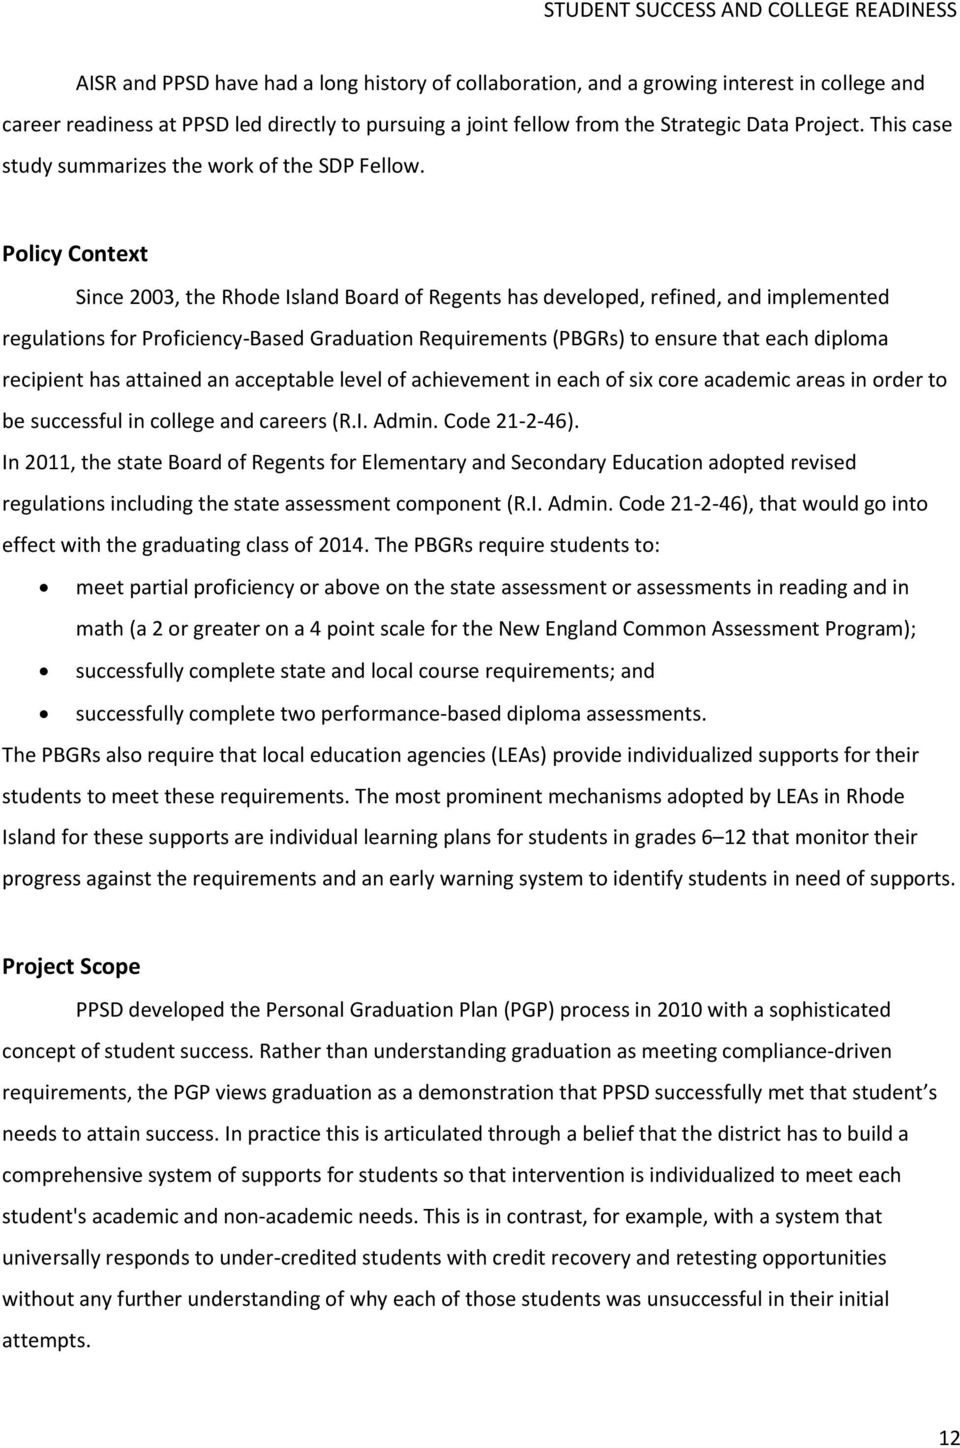 Policy Context Since 2003, the Rhode Island Board of Regents has developed, refined, and implemented regulations for Proficiency-Based Graduation Requirements (PBGRs) to ensure that each diploma